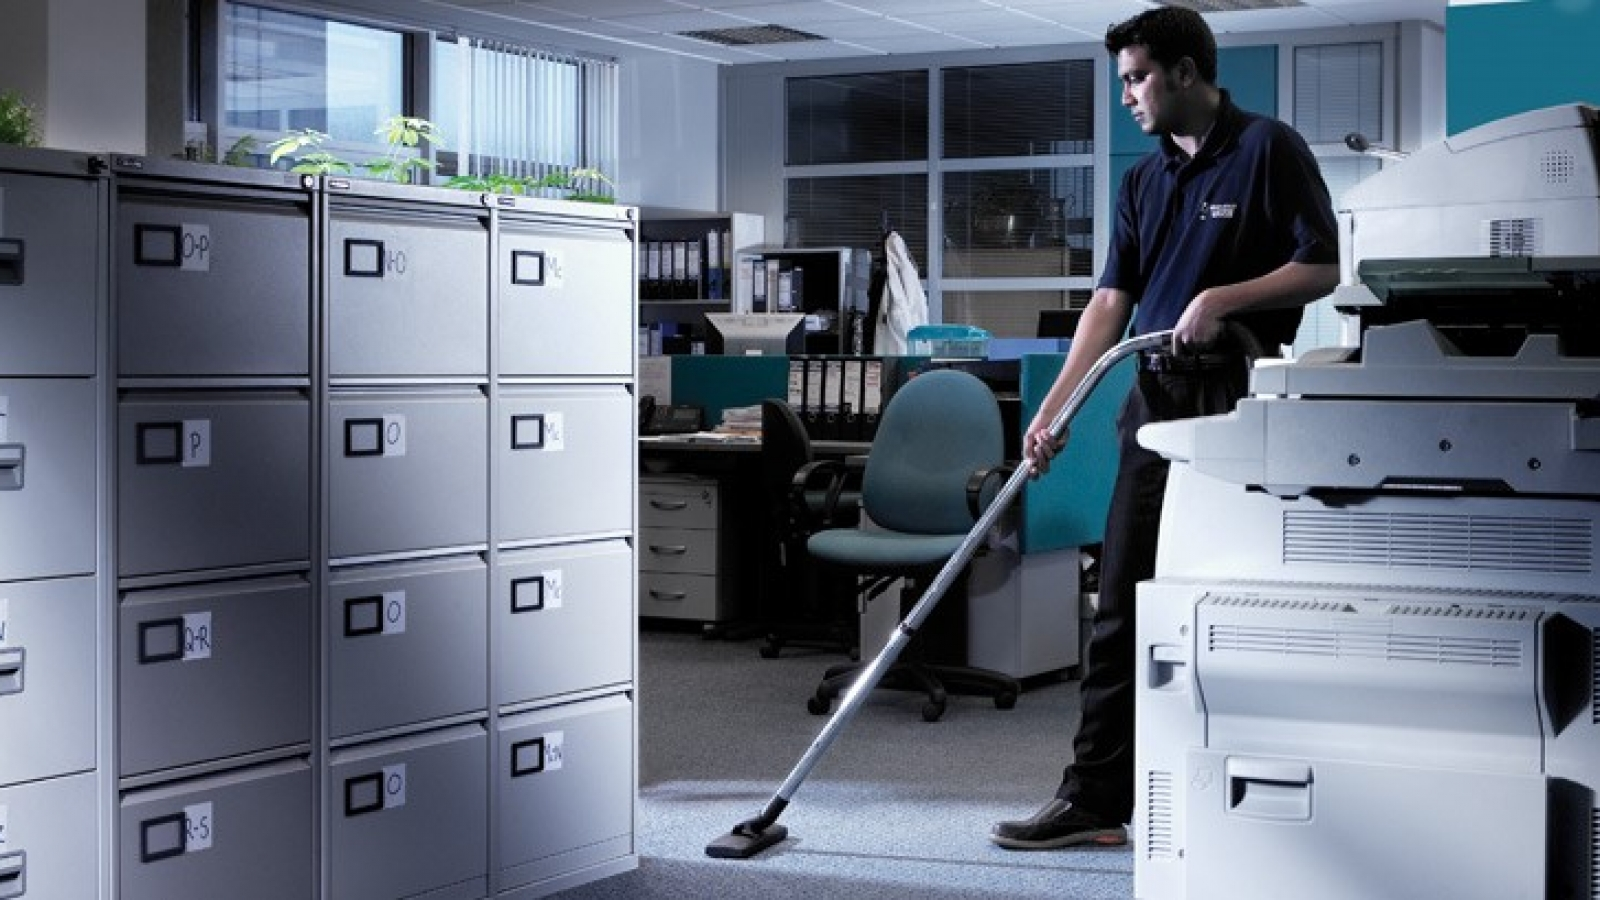 Cleaning and Productivity2